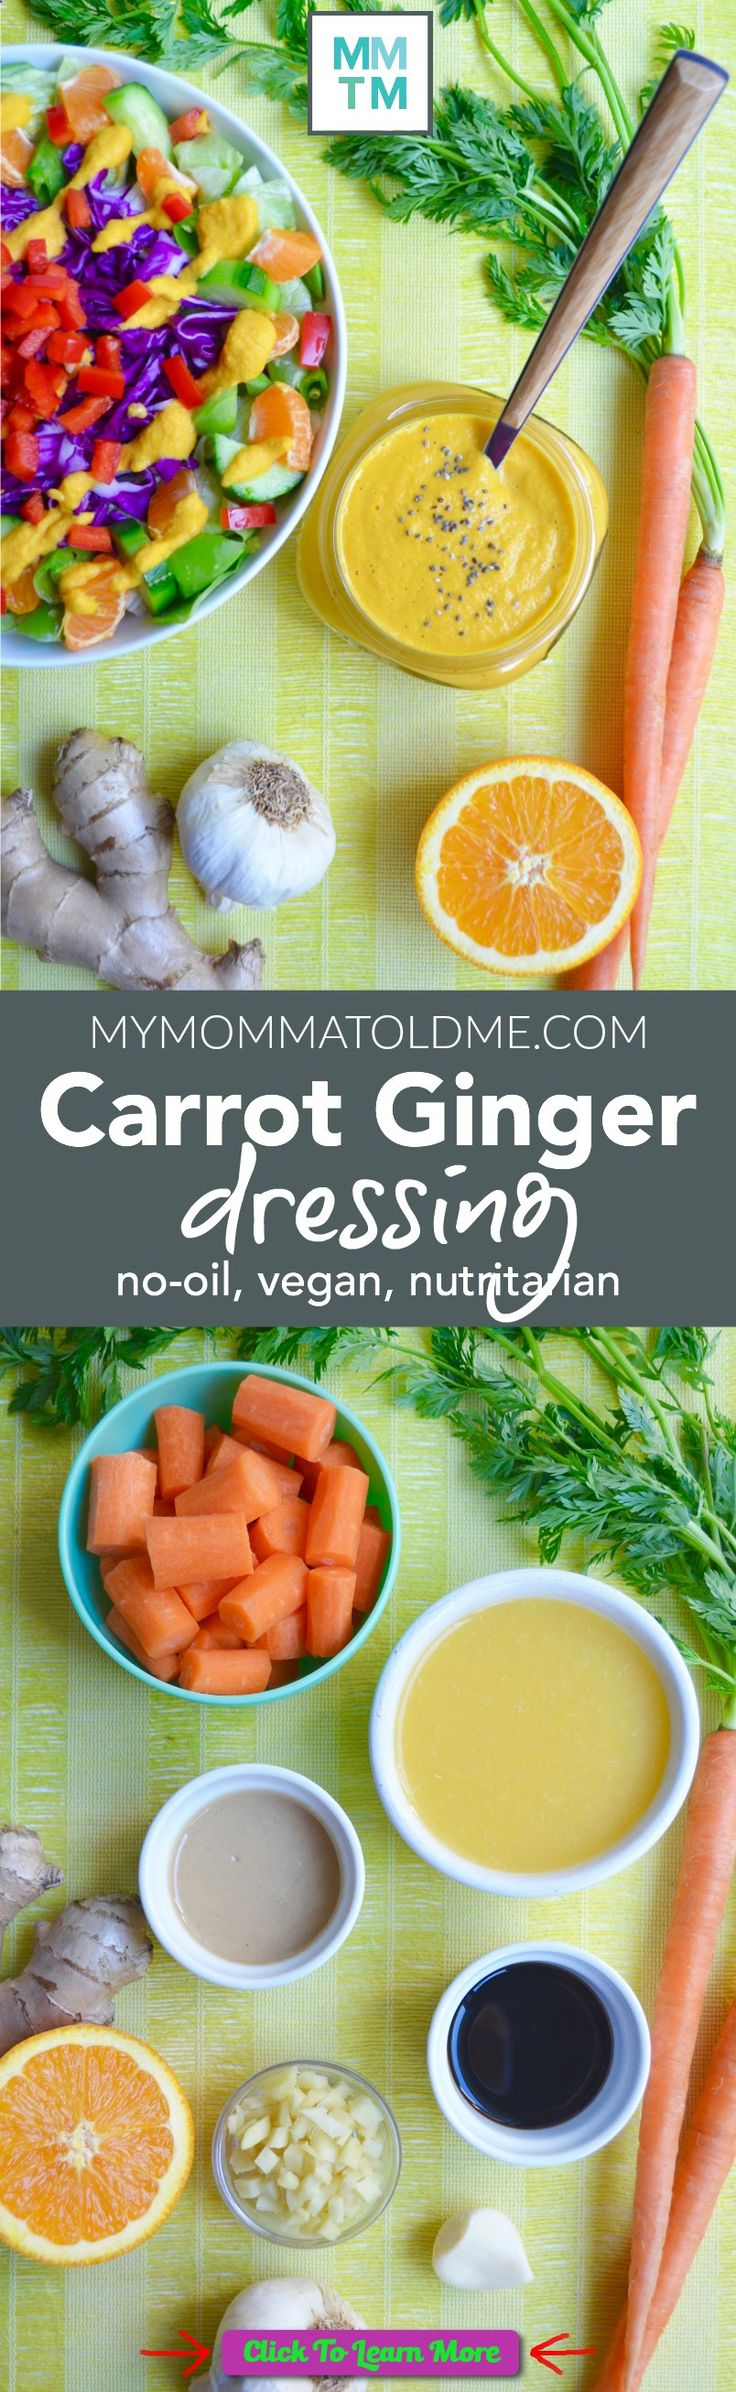 Eat to Live Program, nutritarian oil-free salad dressing recipe! Vegan and Eat to Live program approved! It tastes like the creamy ginger dressing you get at the Japanese restaurants! #health #fitness #weightloss #healthyrecipes #weightlossrecipes